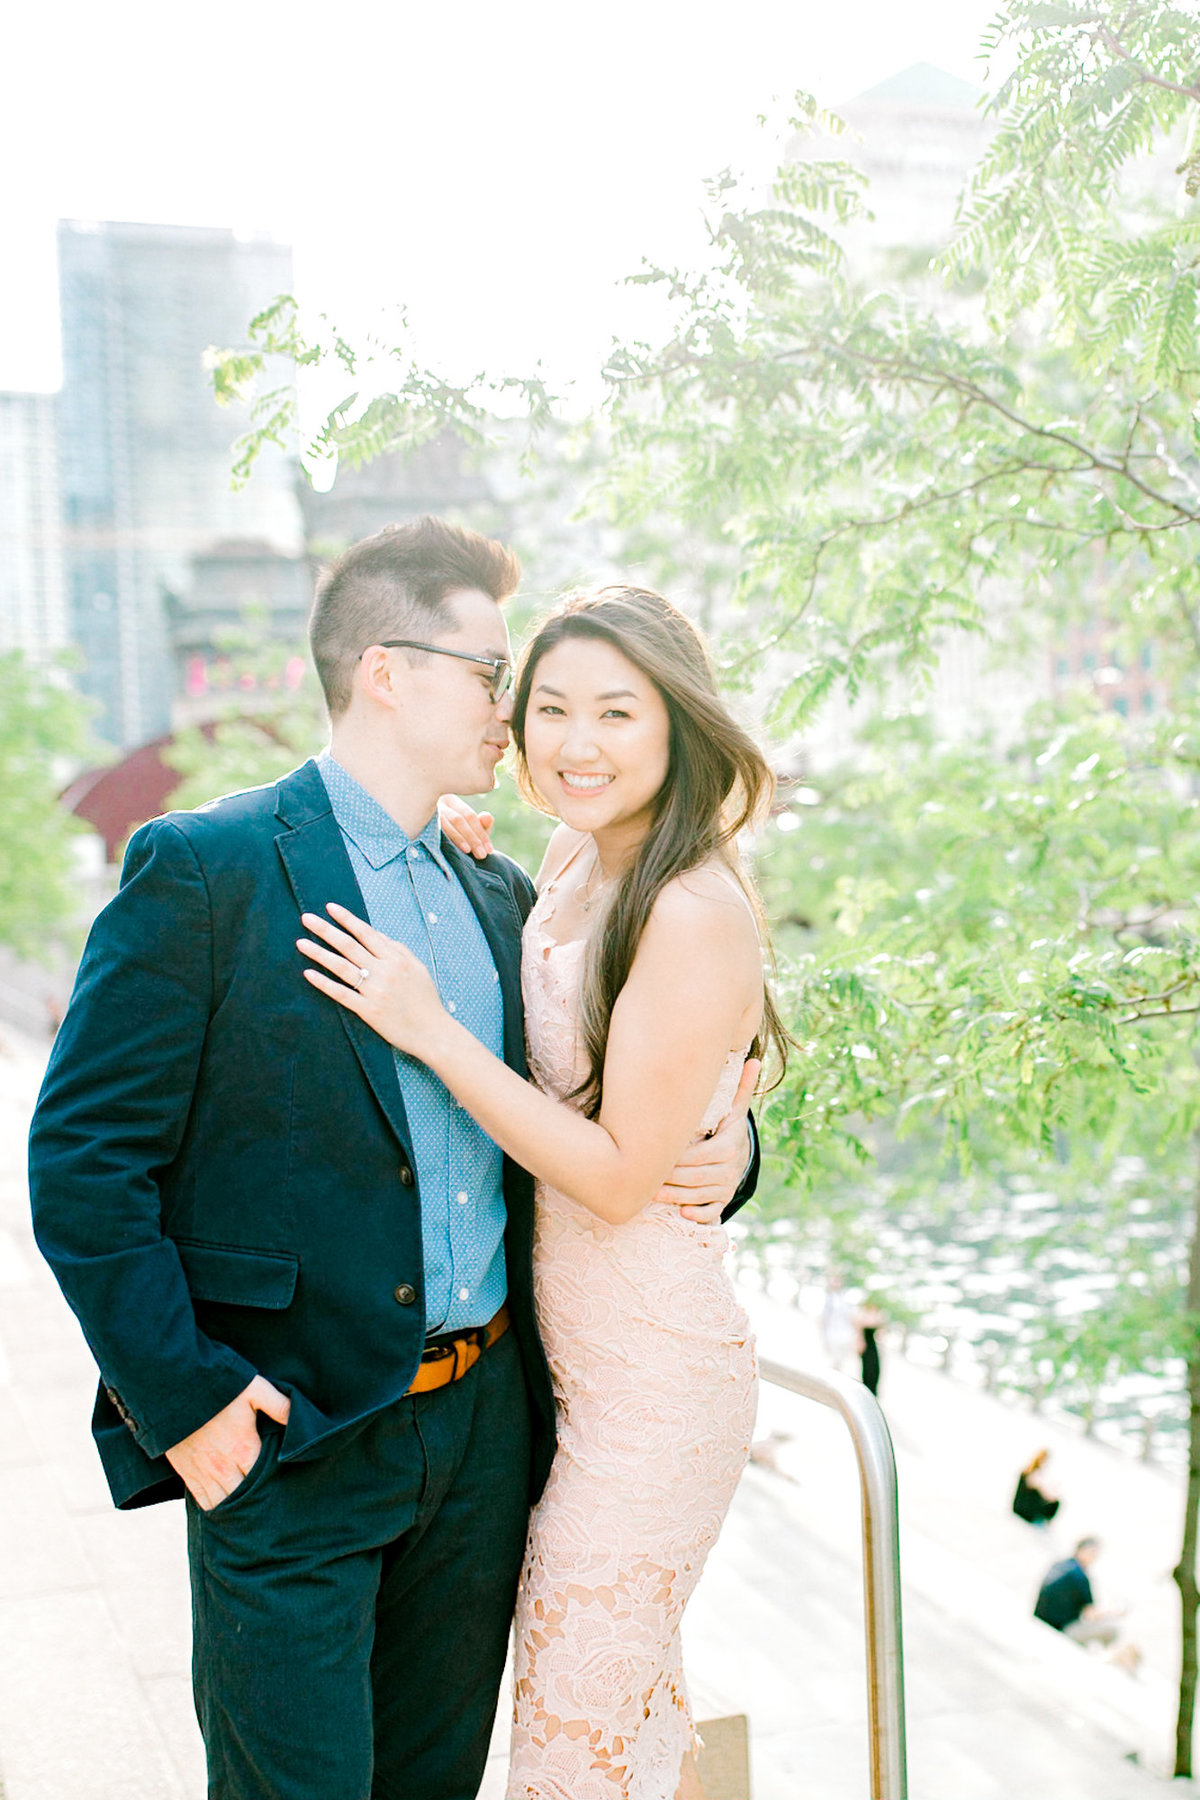 05.31.2018_Yoonha+ Andrew_Engagement Session_GS-13